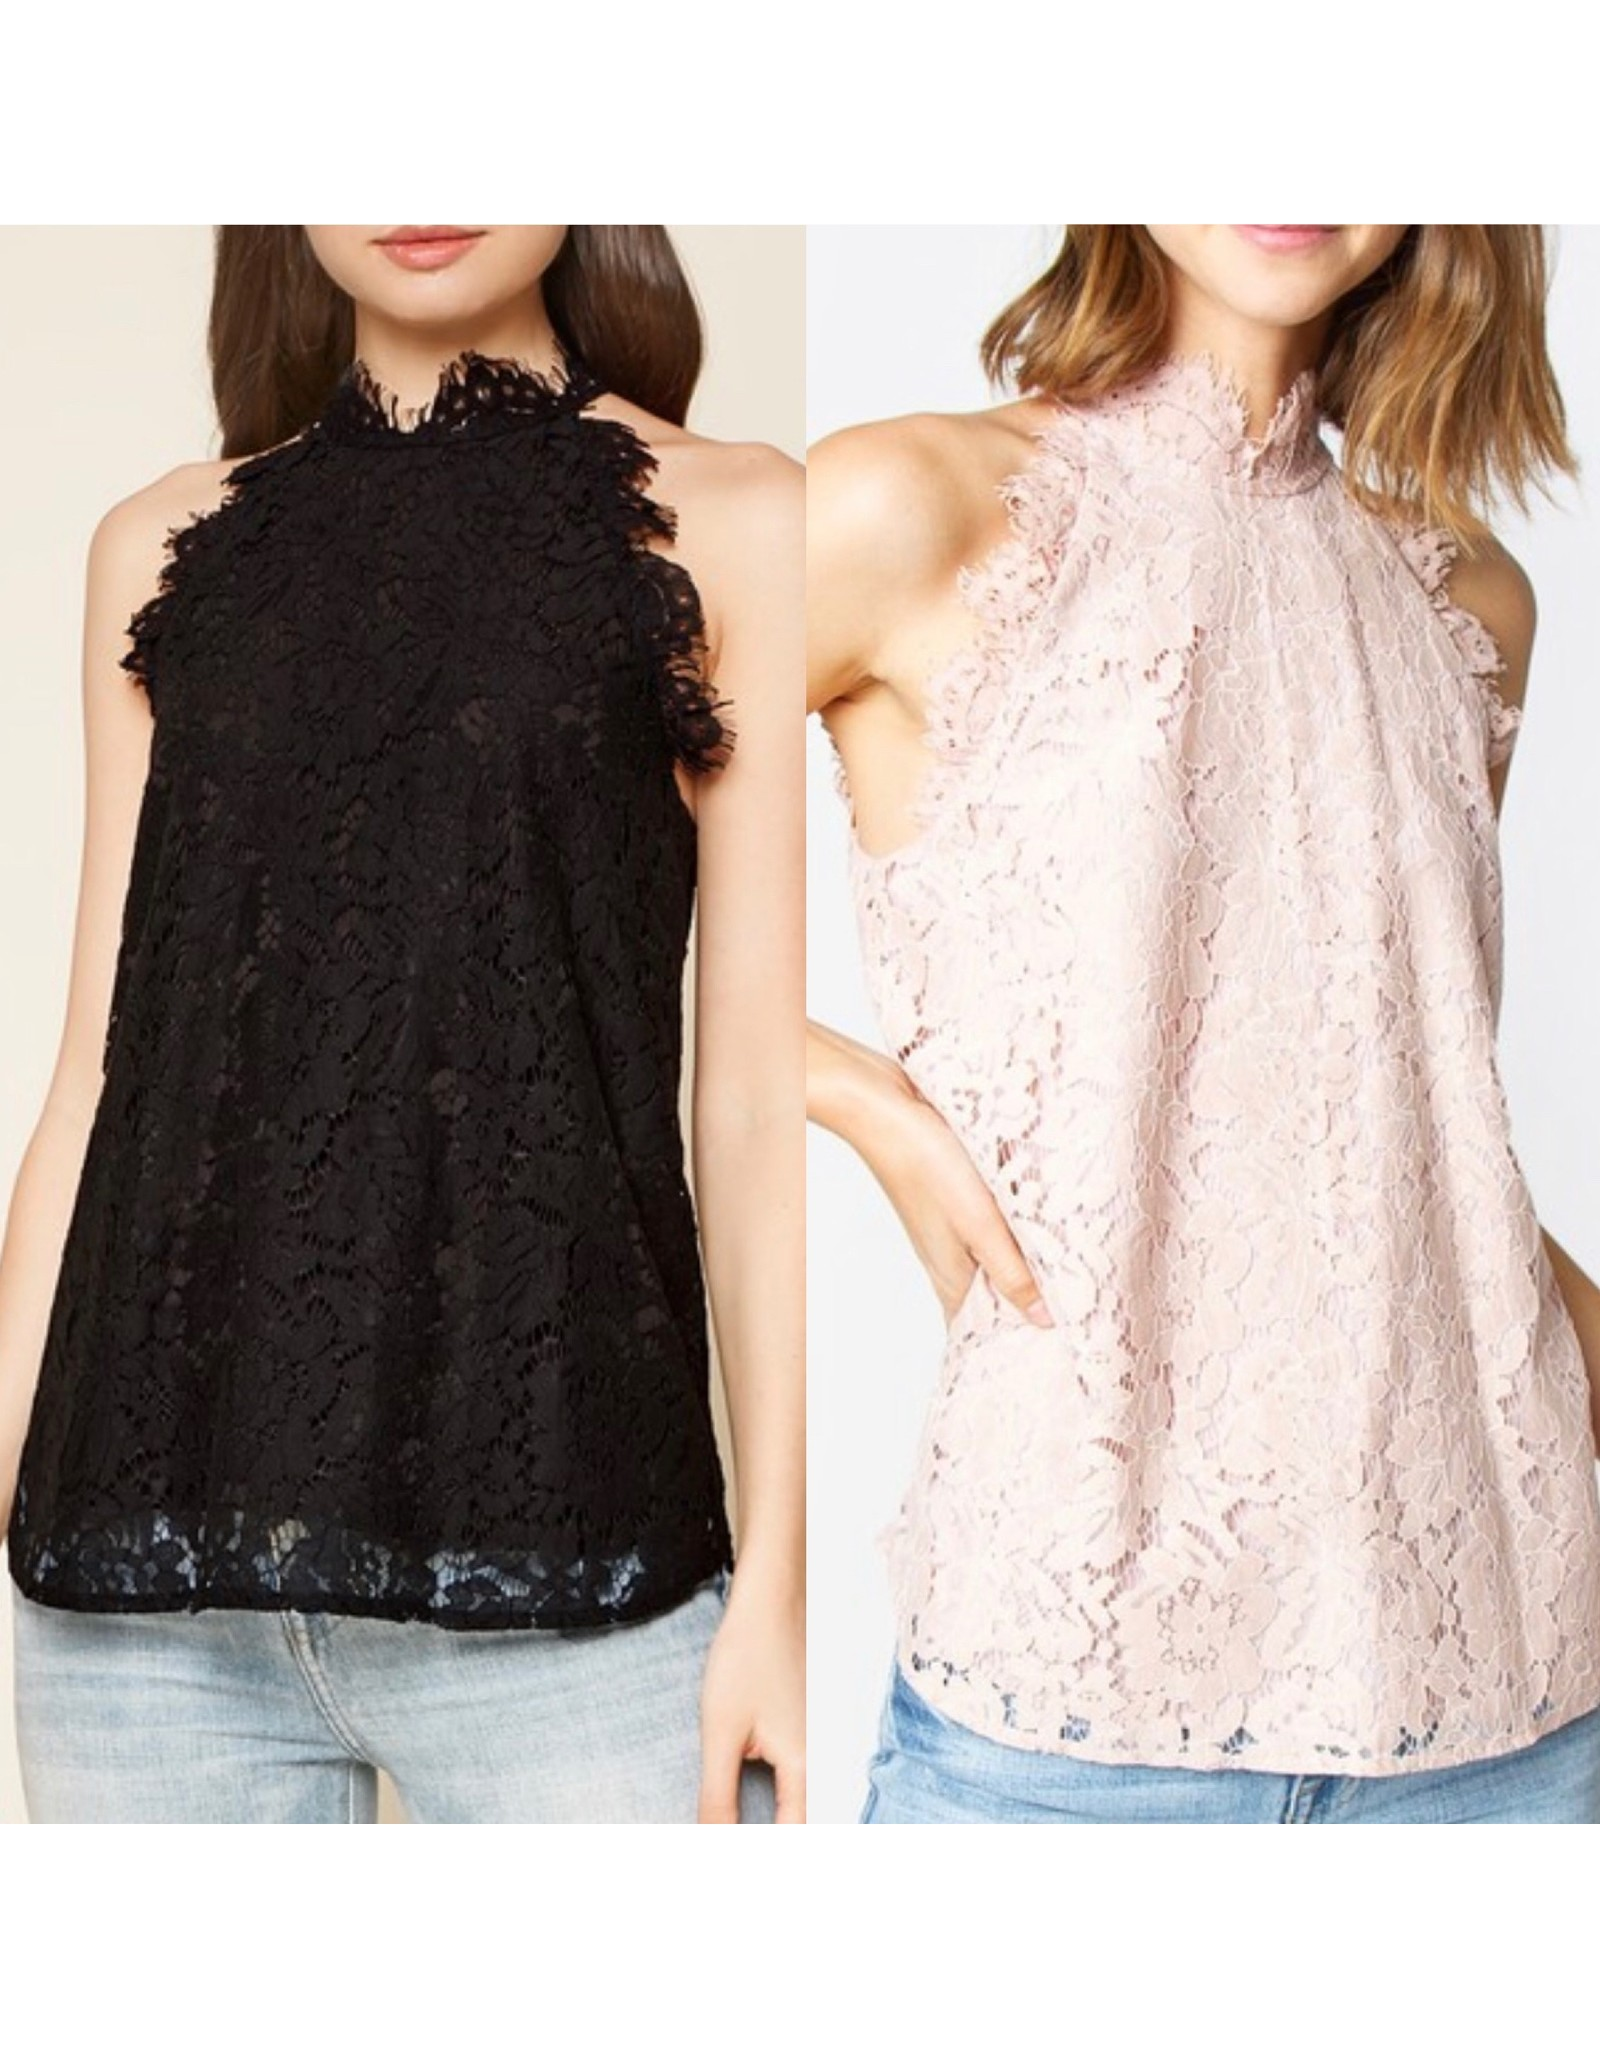 Sugarlips Lace Mock Neck Top